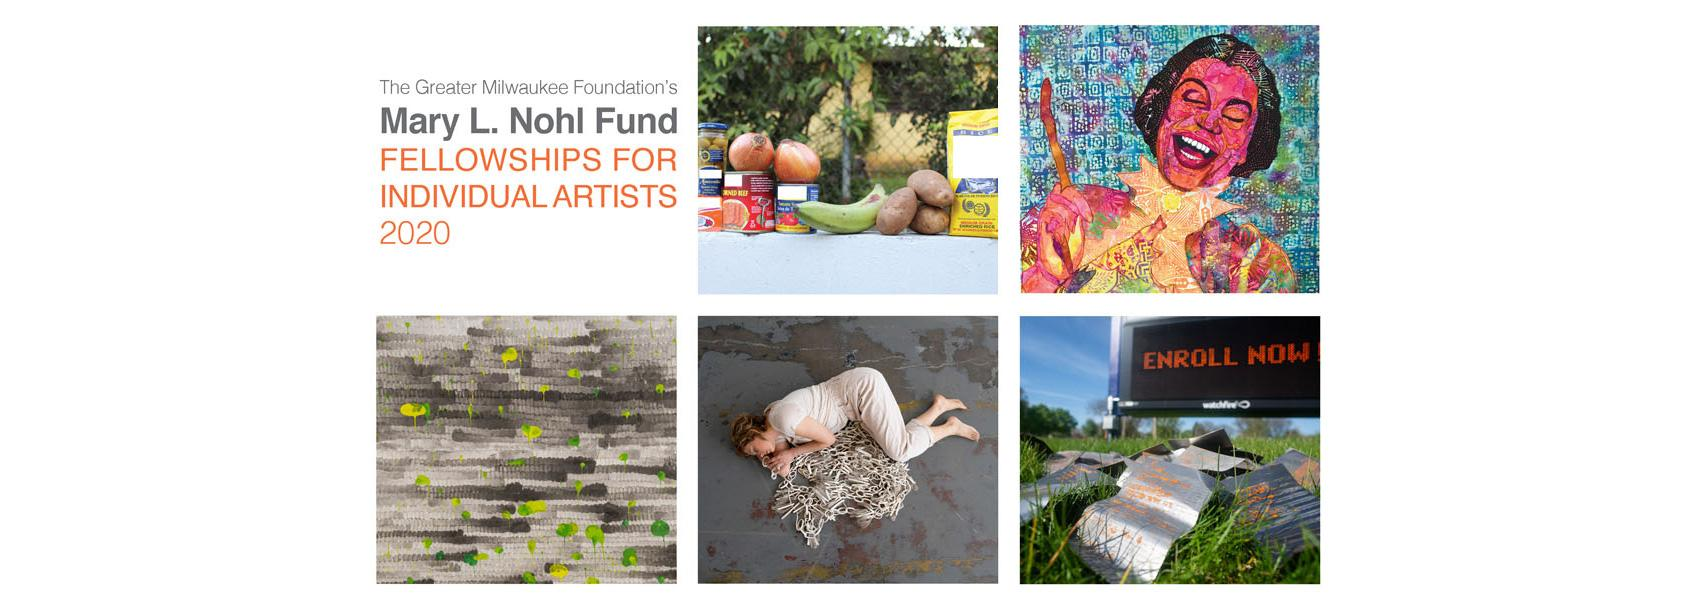 Artwork by the winners of the 2020 Mary L. Nohl Fund Fellowships at the Haggerty Museum of Art at Marquette University.